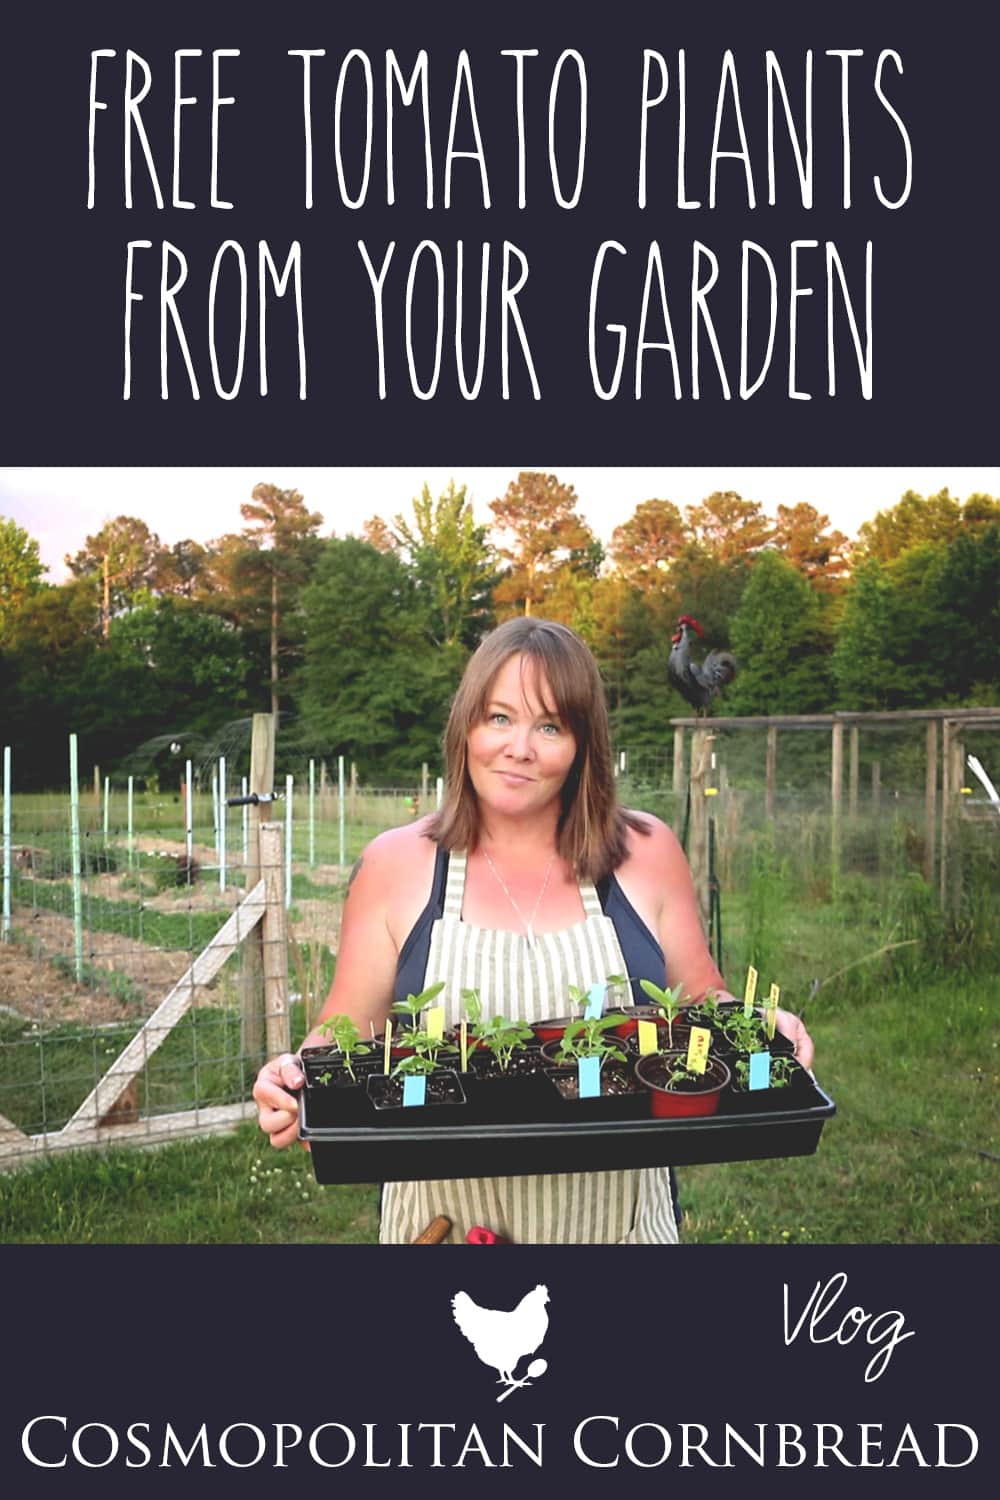 I received a lovely gift from a friend, then I headed out into the garden and shared how you can pretty much have an unlimited supply of tomato plants for FREE.